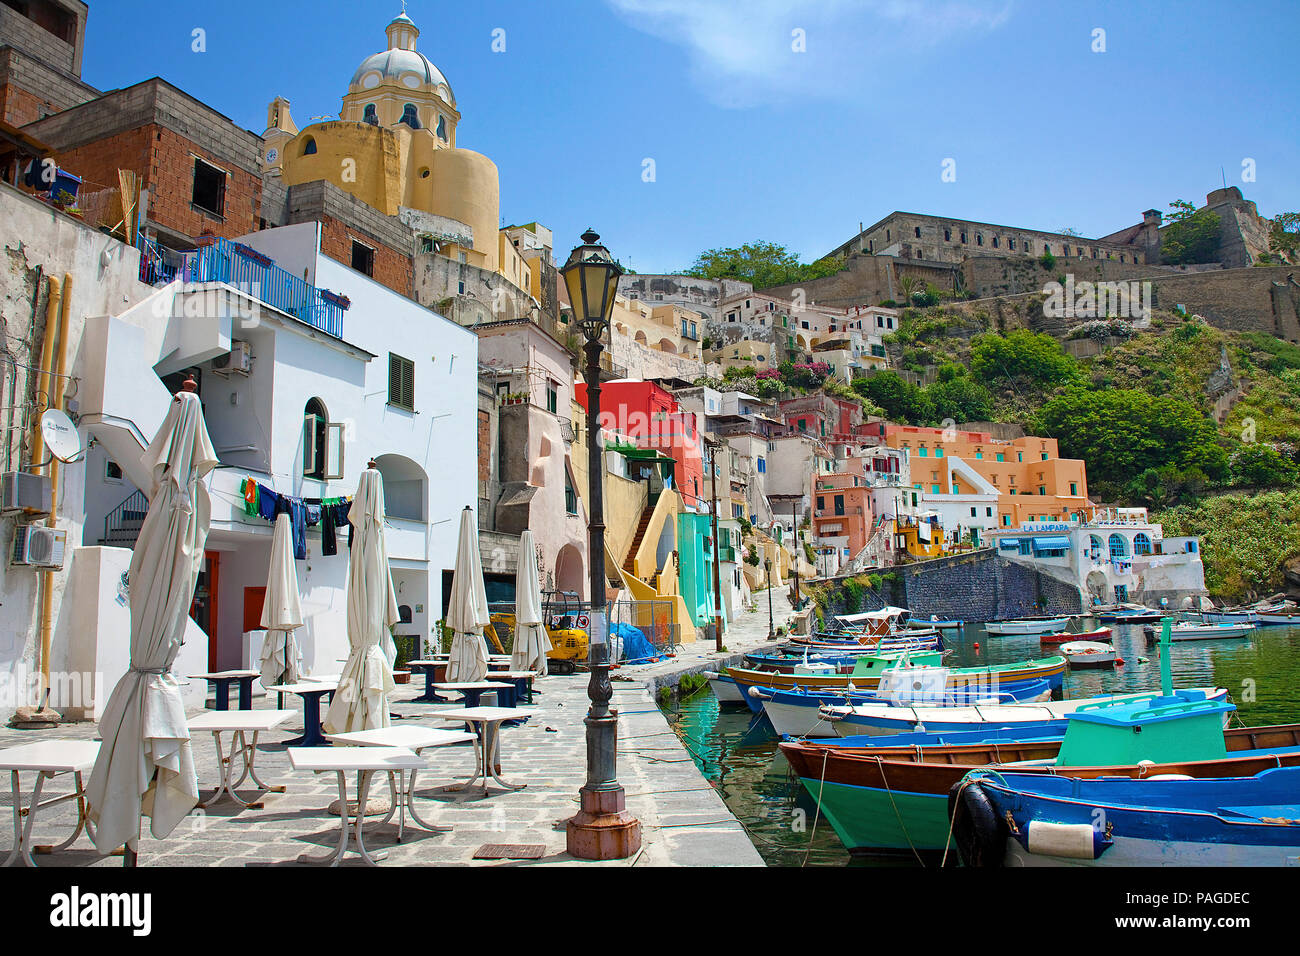 The idyllic fishing village Procida with fishing harbour Marina di Corricella, above the fortress Terra Murata, a former prison, Gulf of Naples, Italy - Stock Image